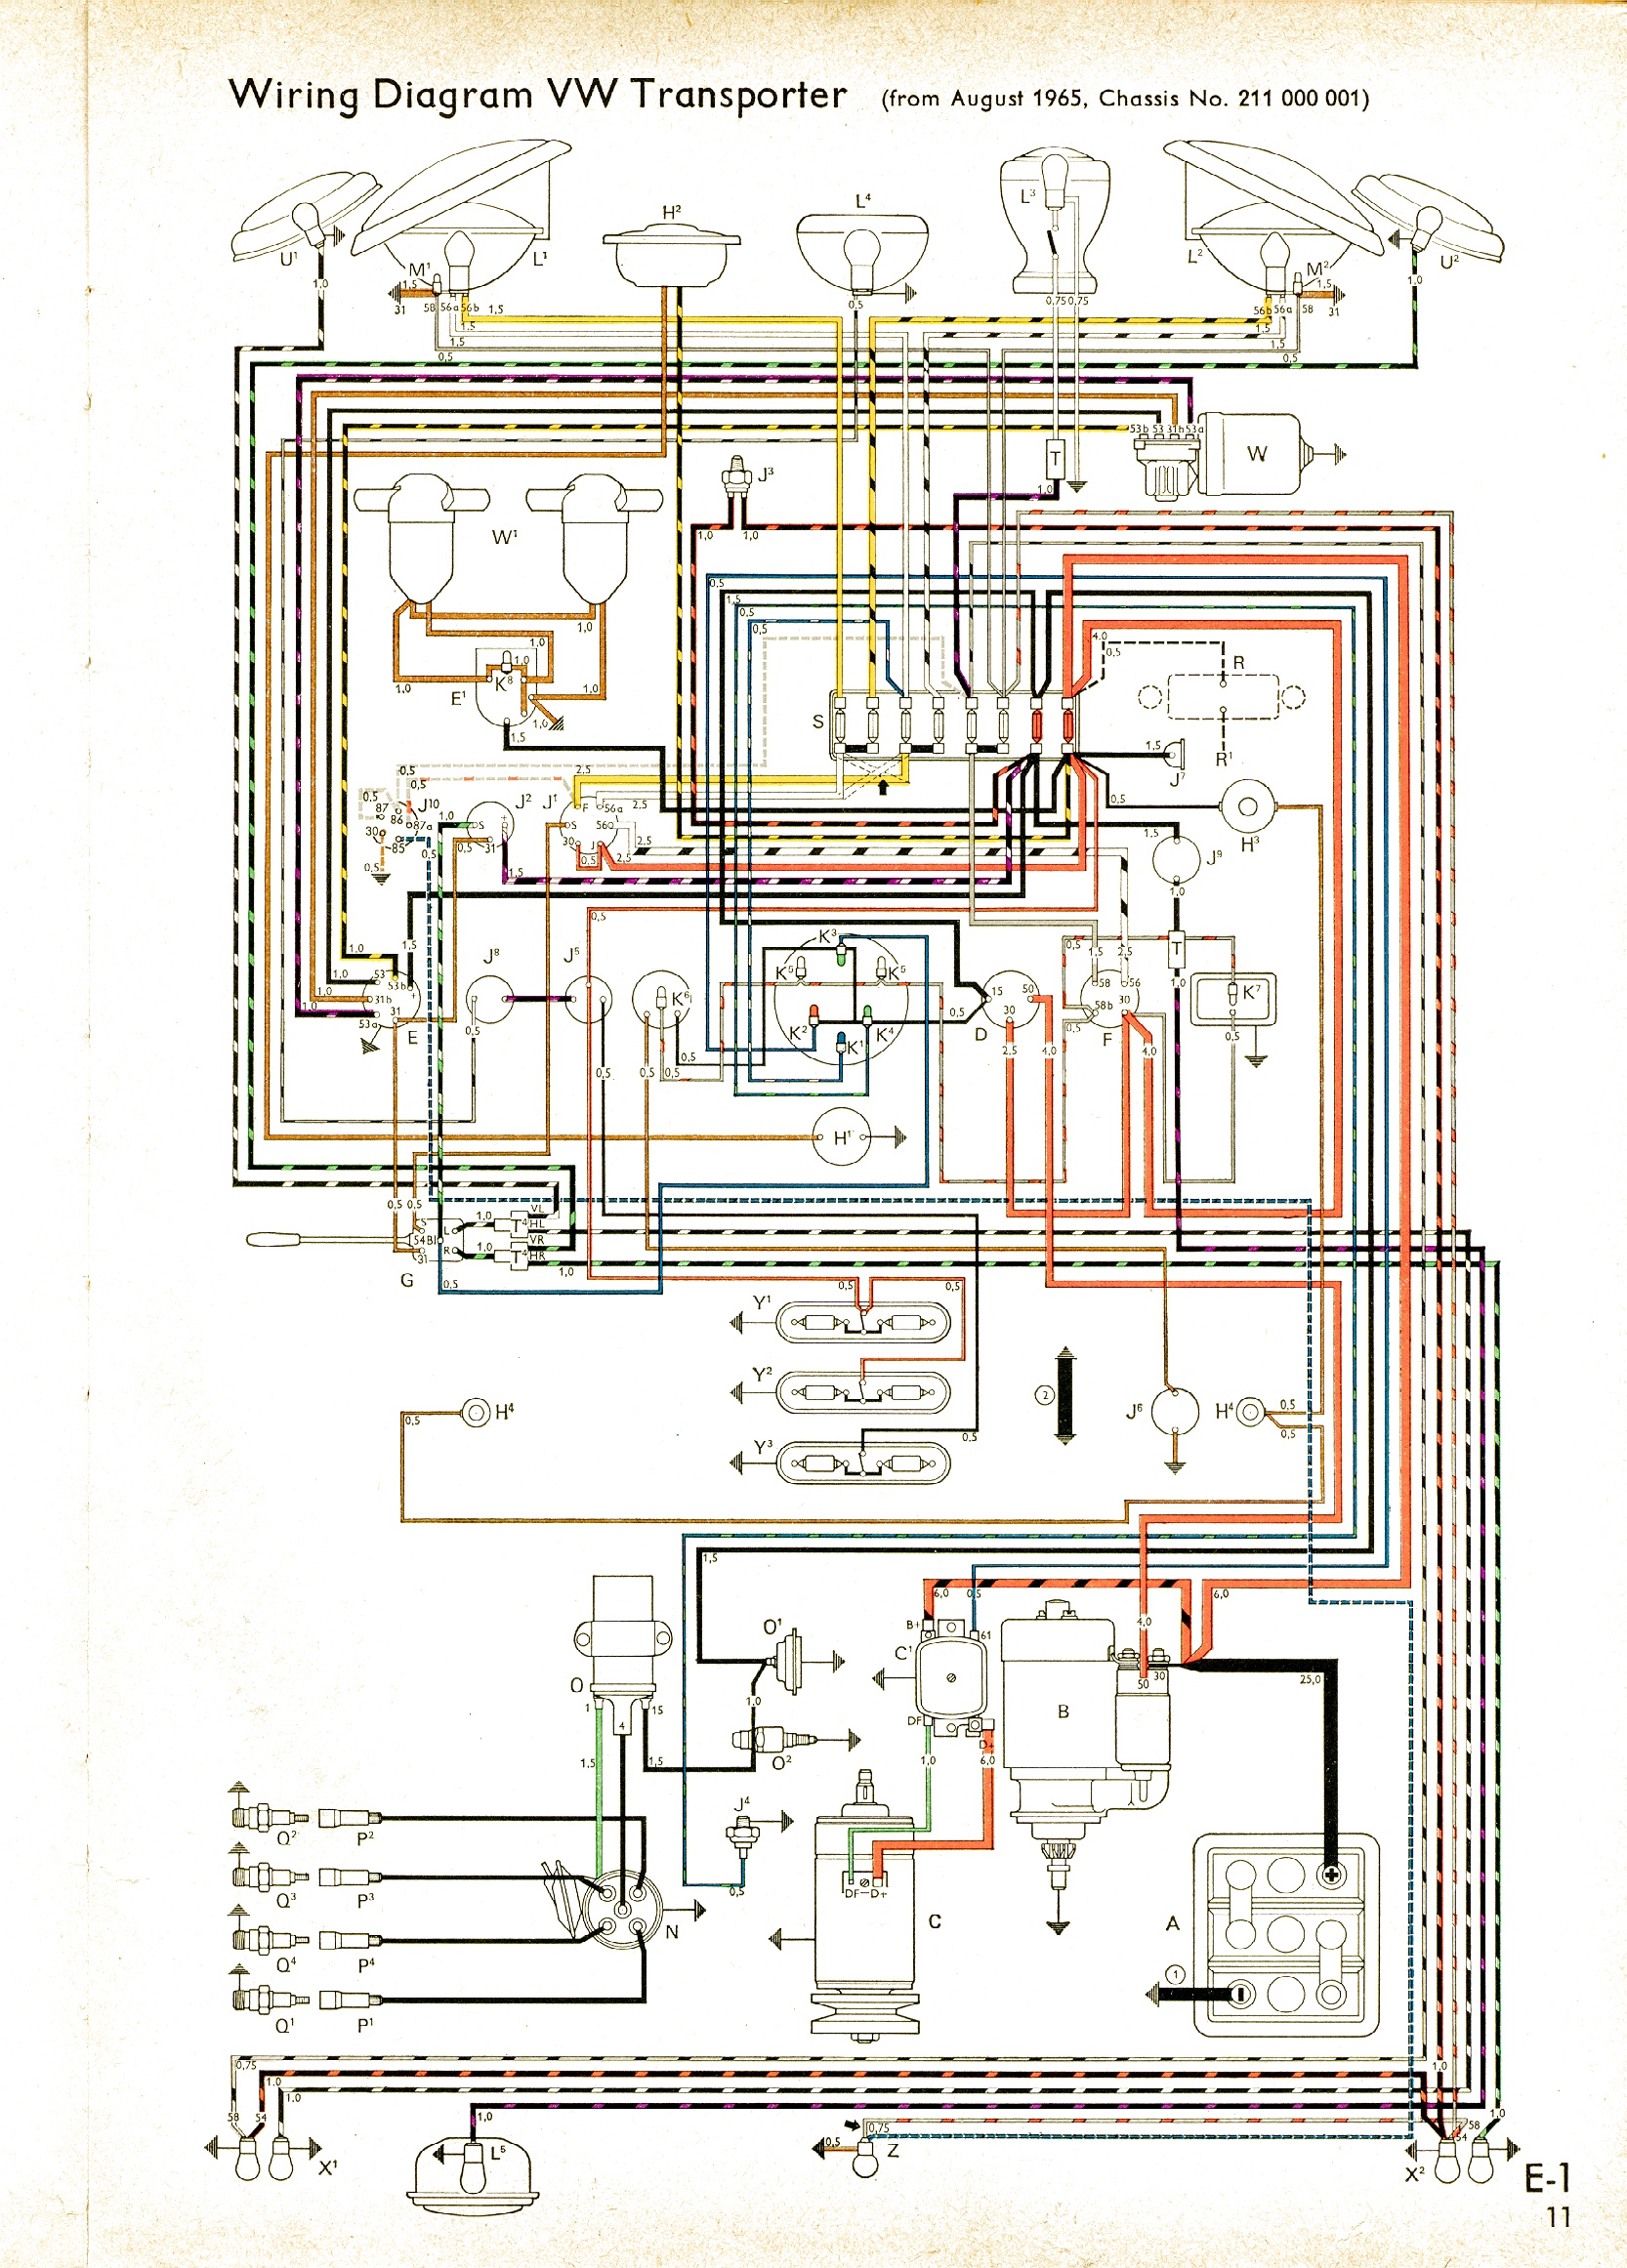 bus 65 vintagebus com vw bus (and other) wiring diagrams vw beetle 2002 radio wiring diagram at panicattacktreatment.co